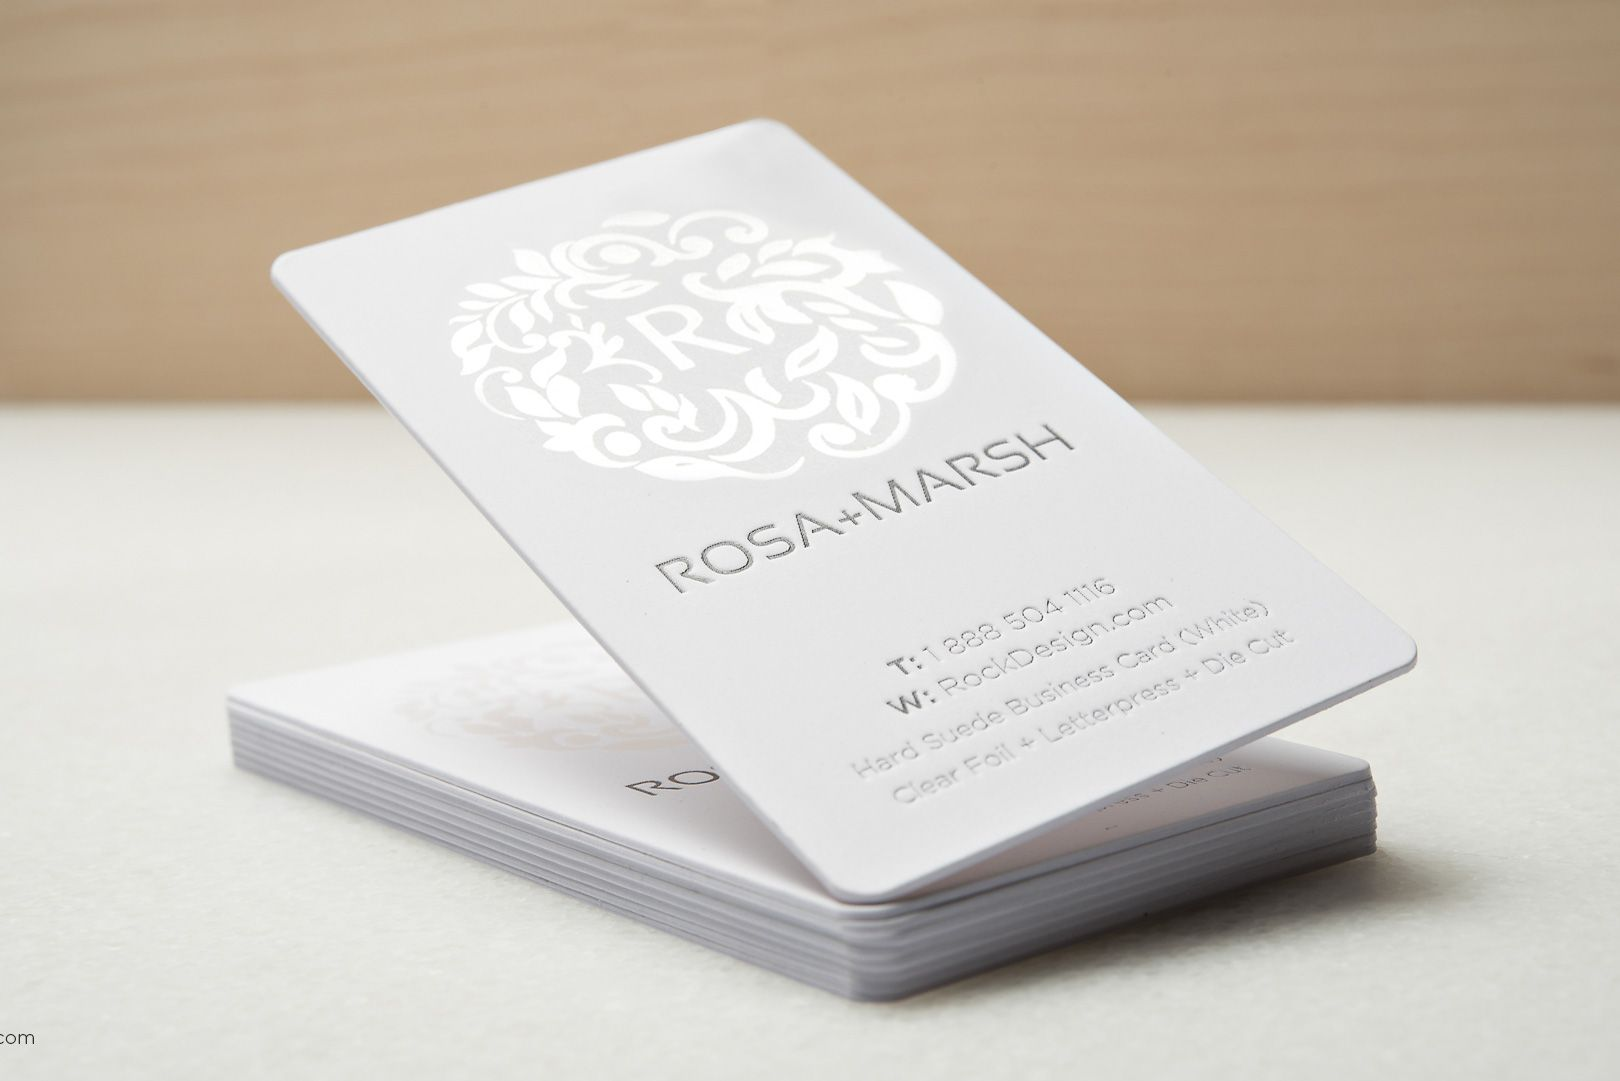 Elegant modern white suede business card with foil stamping and elegant modern white suede business card with foil stamping and letterpress rosa marsh rockdesign luxury business card printing reheart